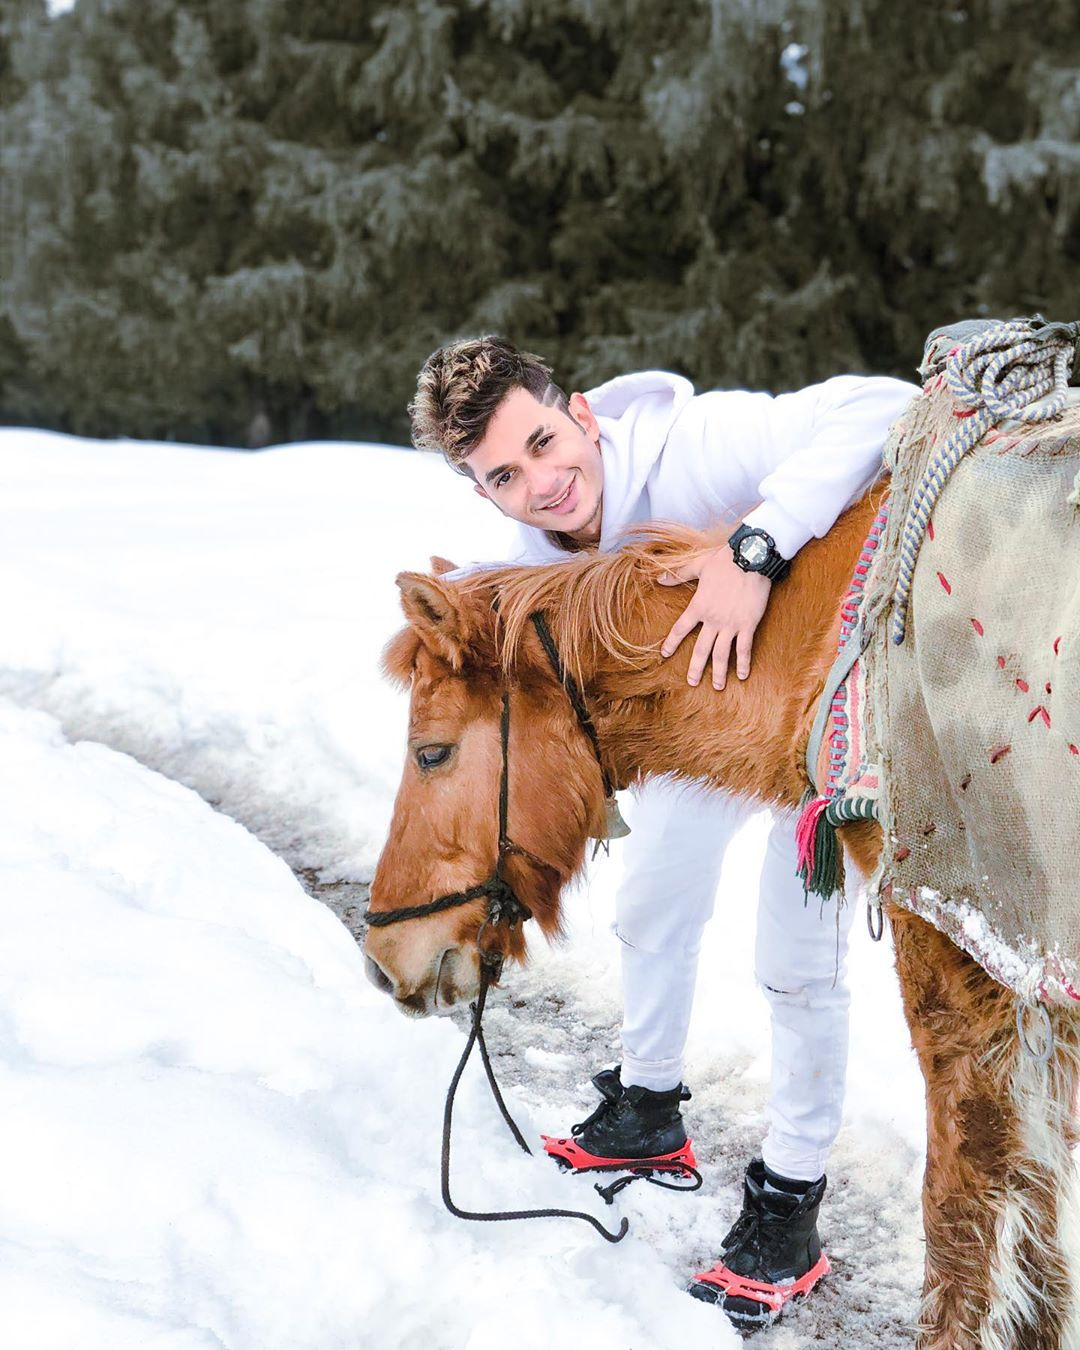 viplove master with a horse in snow